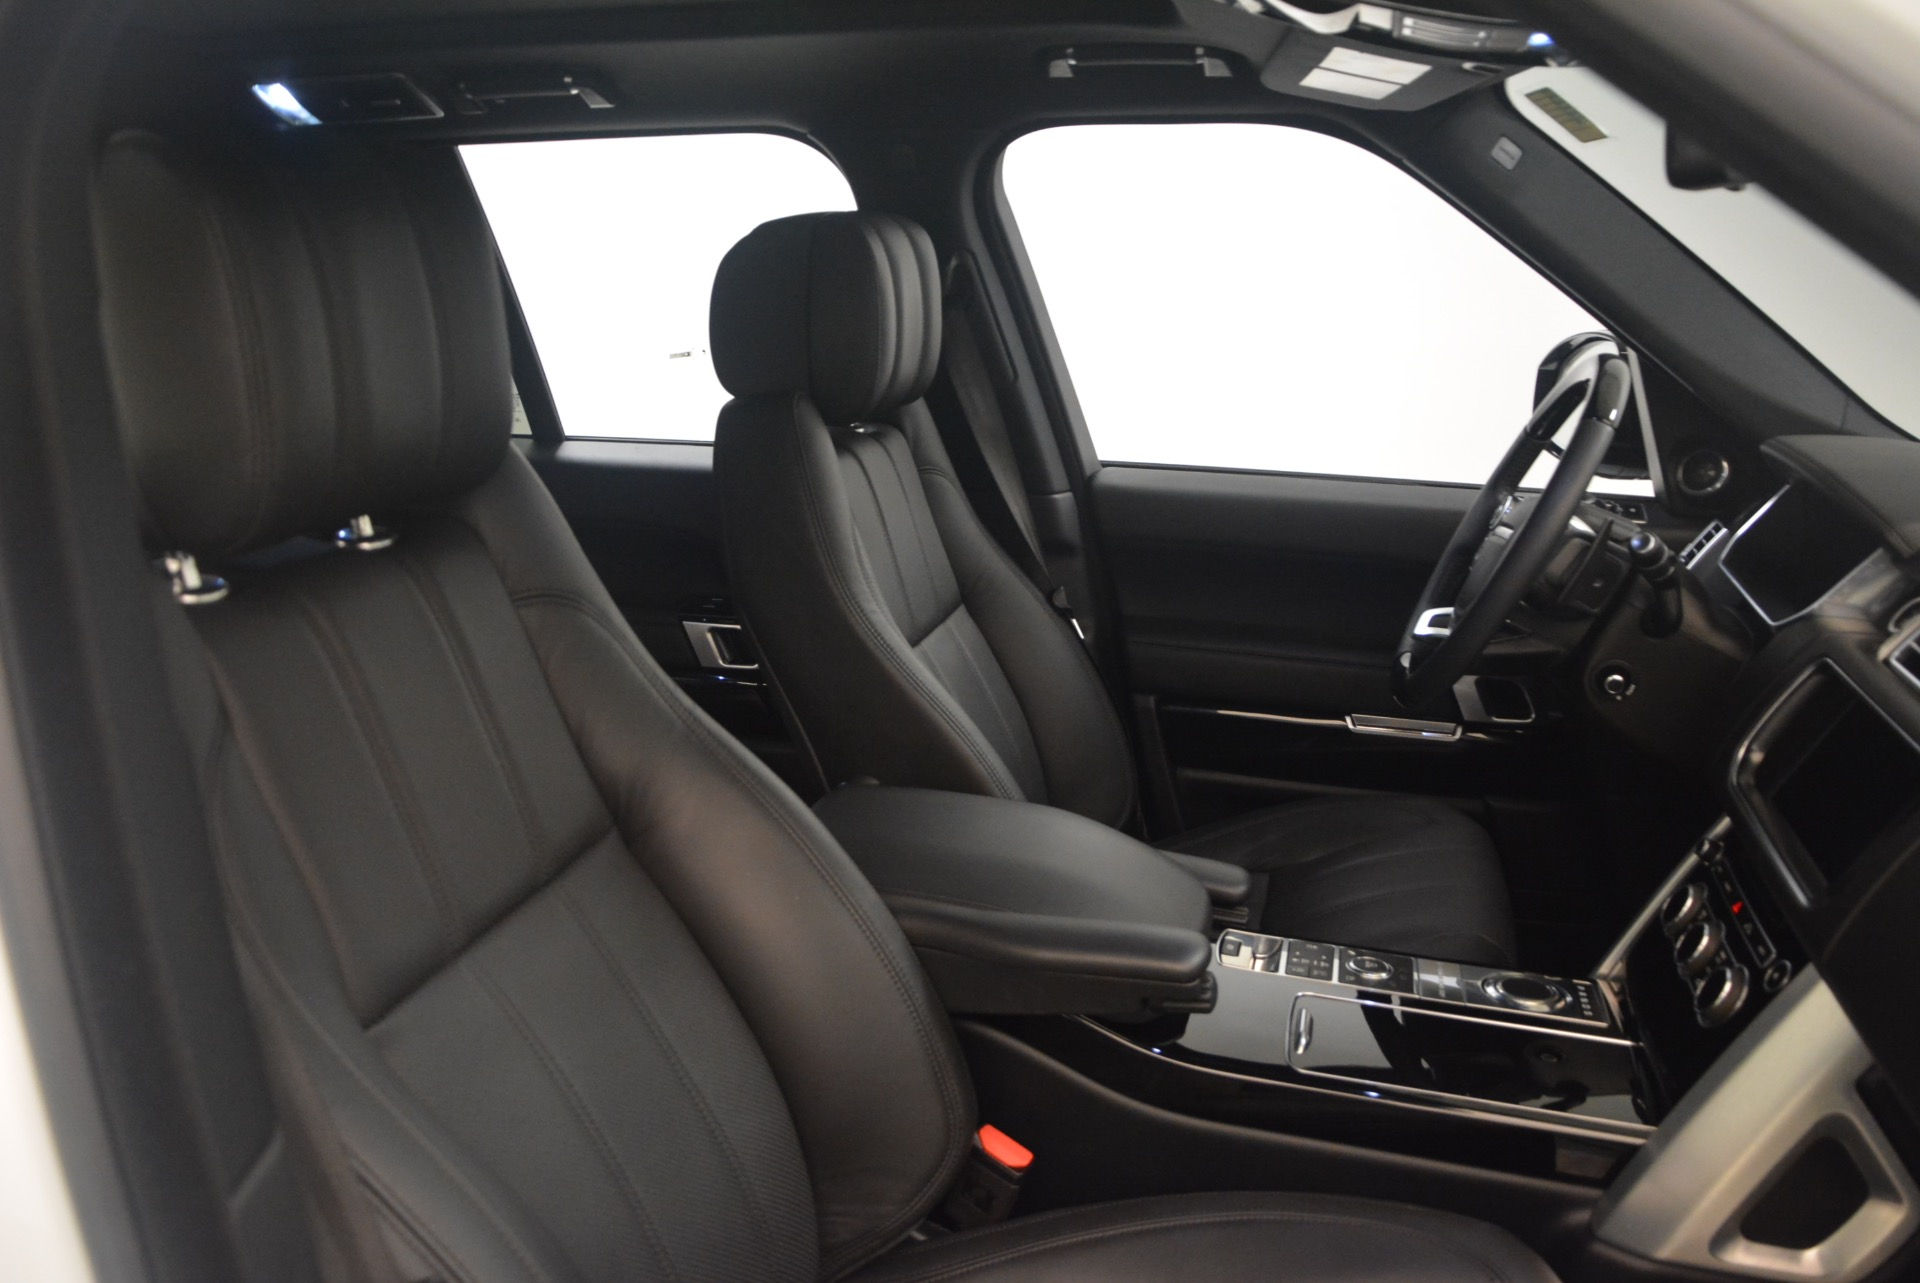 Used 2015 Land Rover Range Rover Supercharged For Sale In Greenwich, CT 1292_p30